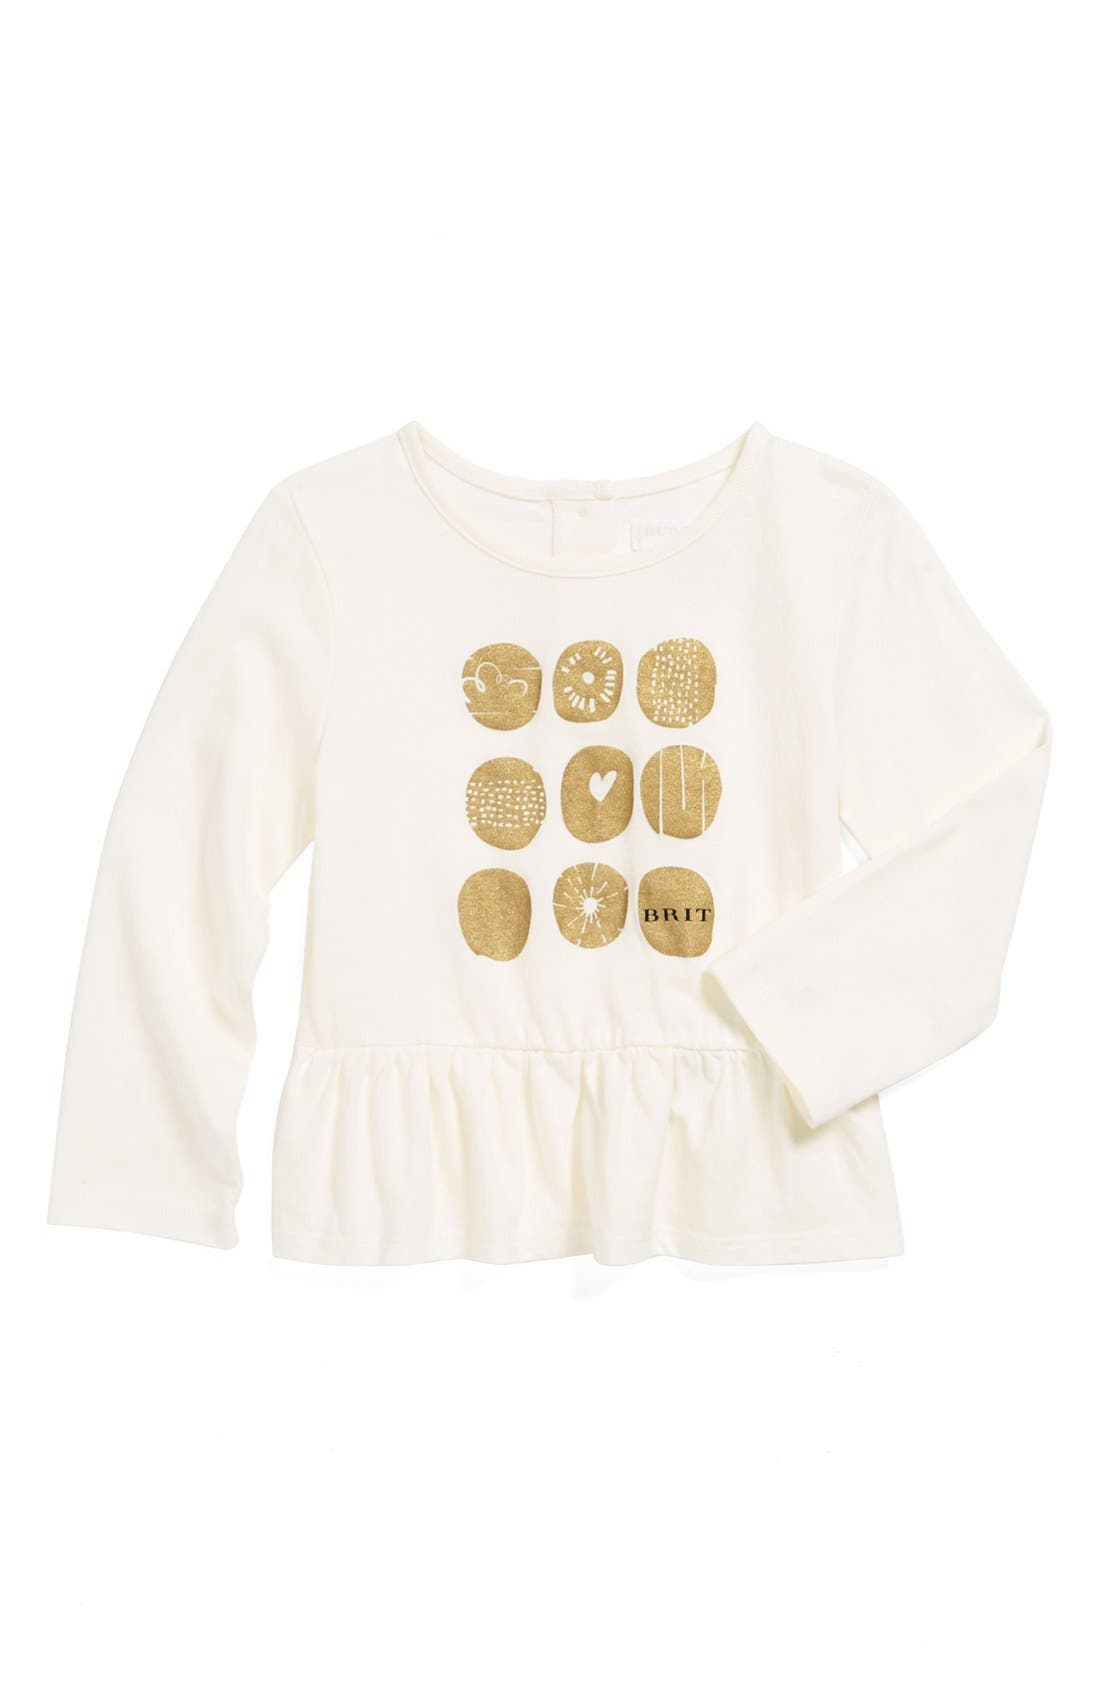 Alternate Image 1 Selected - Burberry Graphic Tee (Baby Girls)